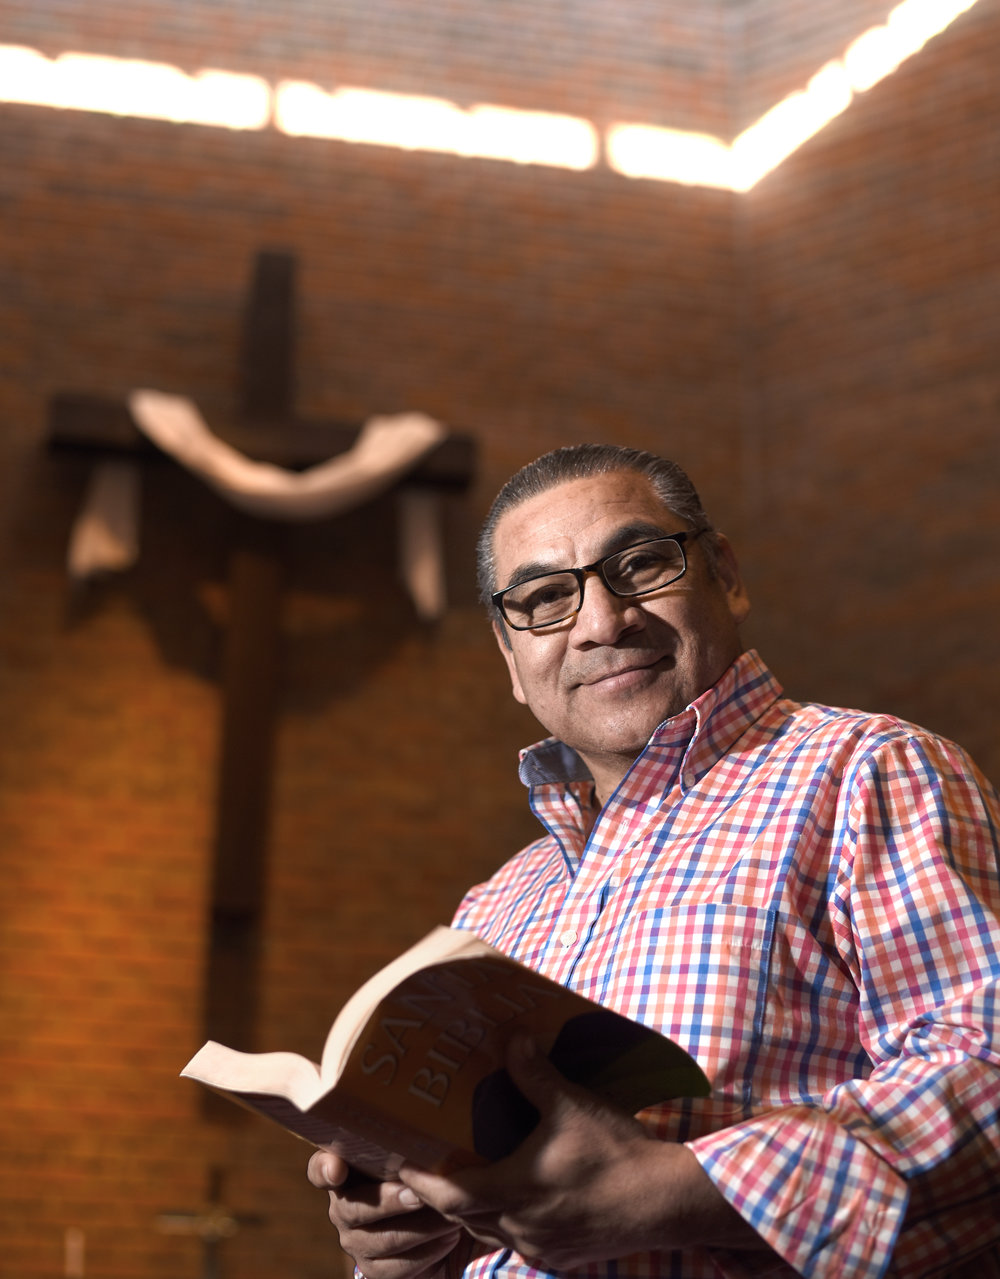 Pastor Juan Mayorga, of Delavan, leads church services for the Hispanic Ministry at the Monroe United Methodist. Pastor Mayorga has been a part of the Hispanic Ministry in Monroe since July 2017.